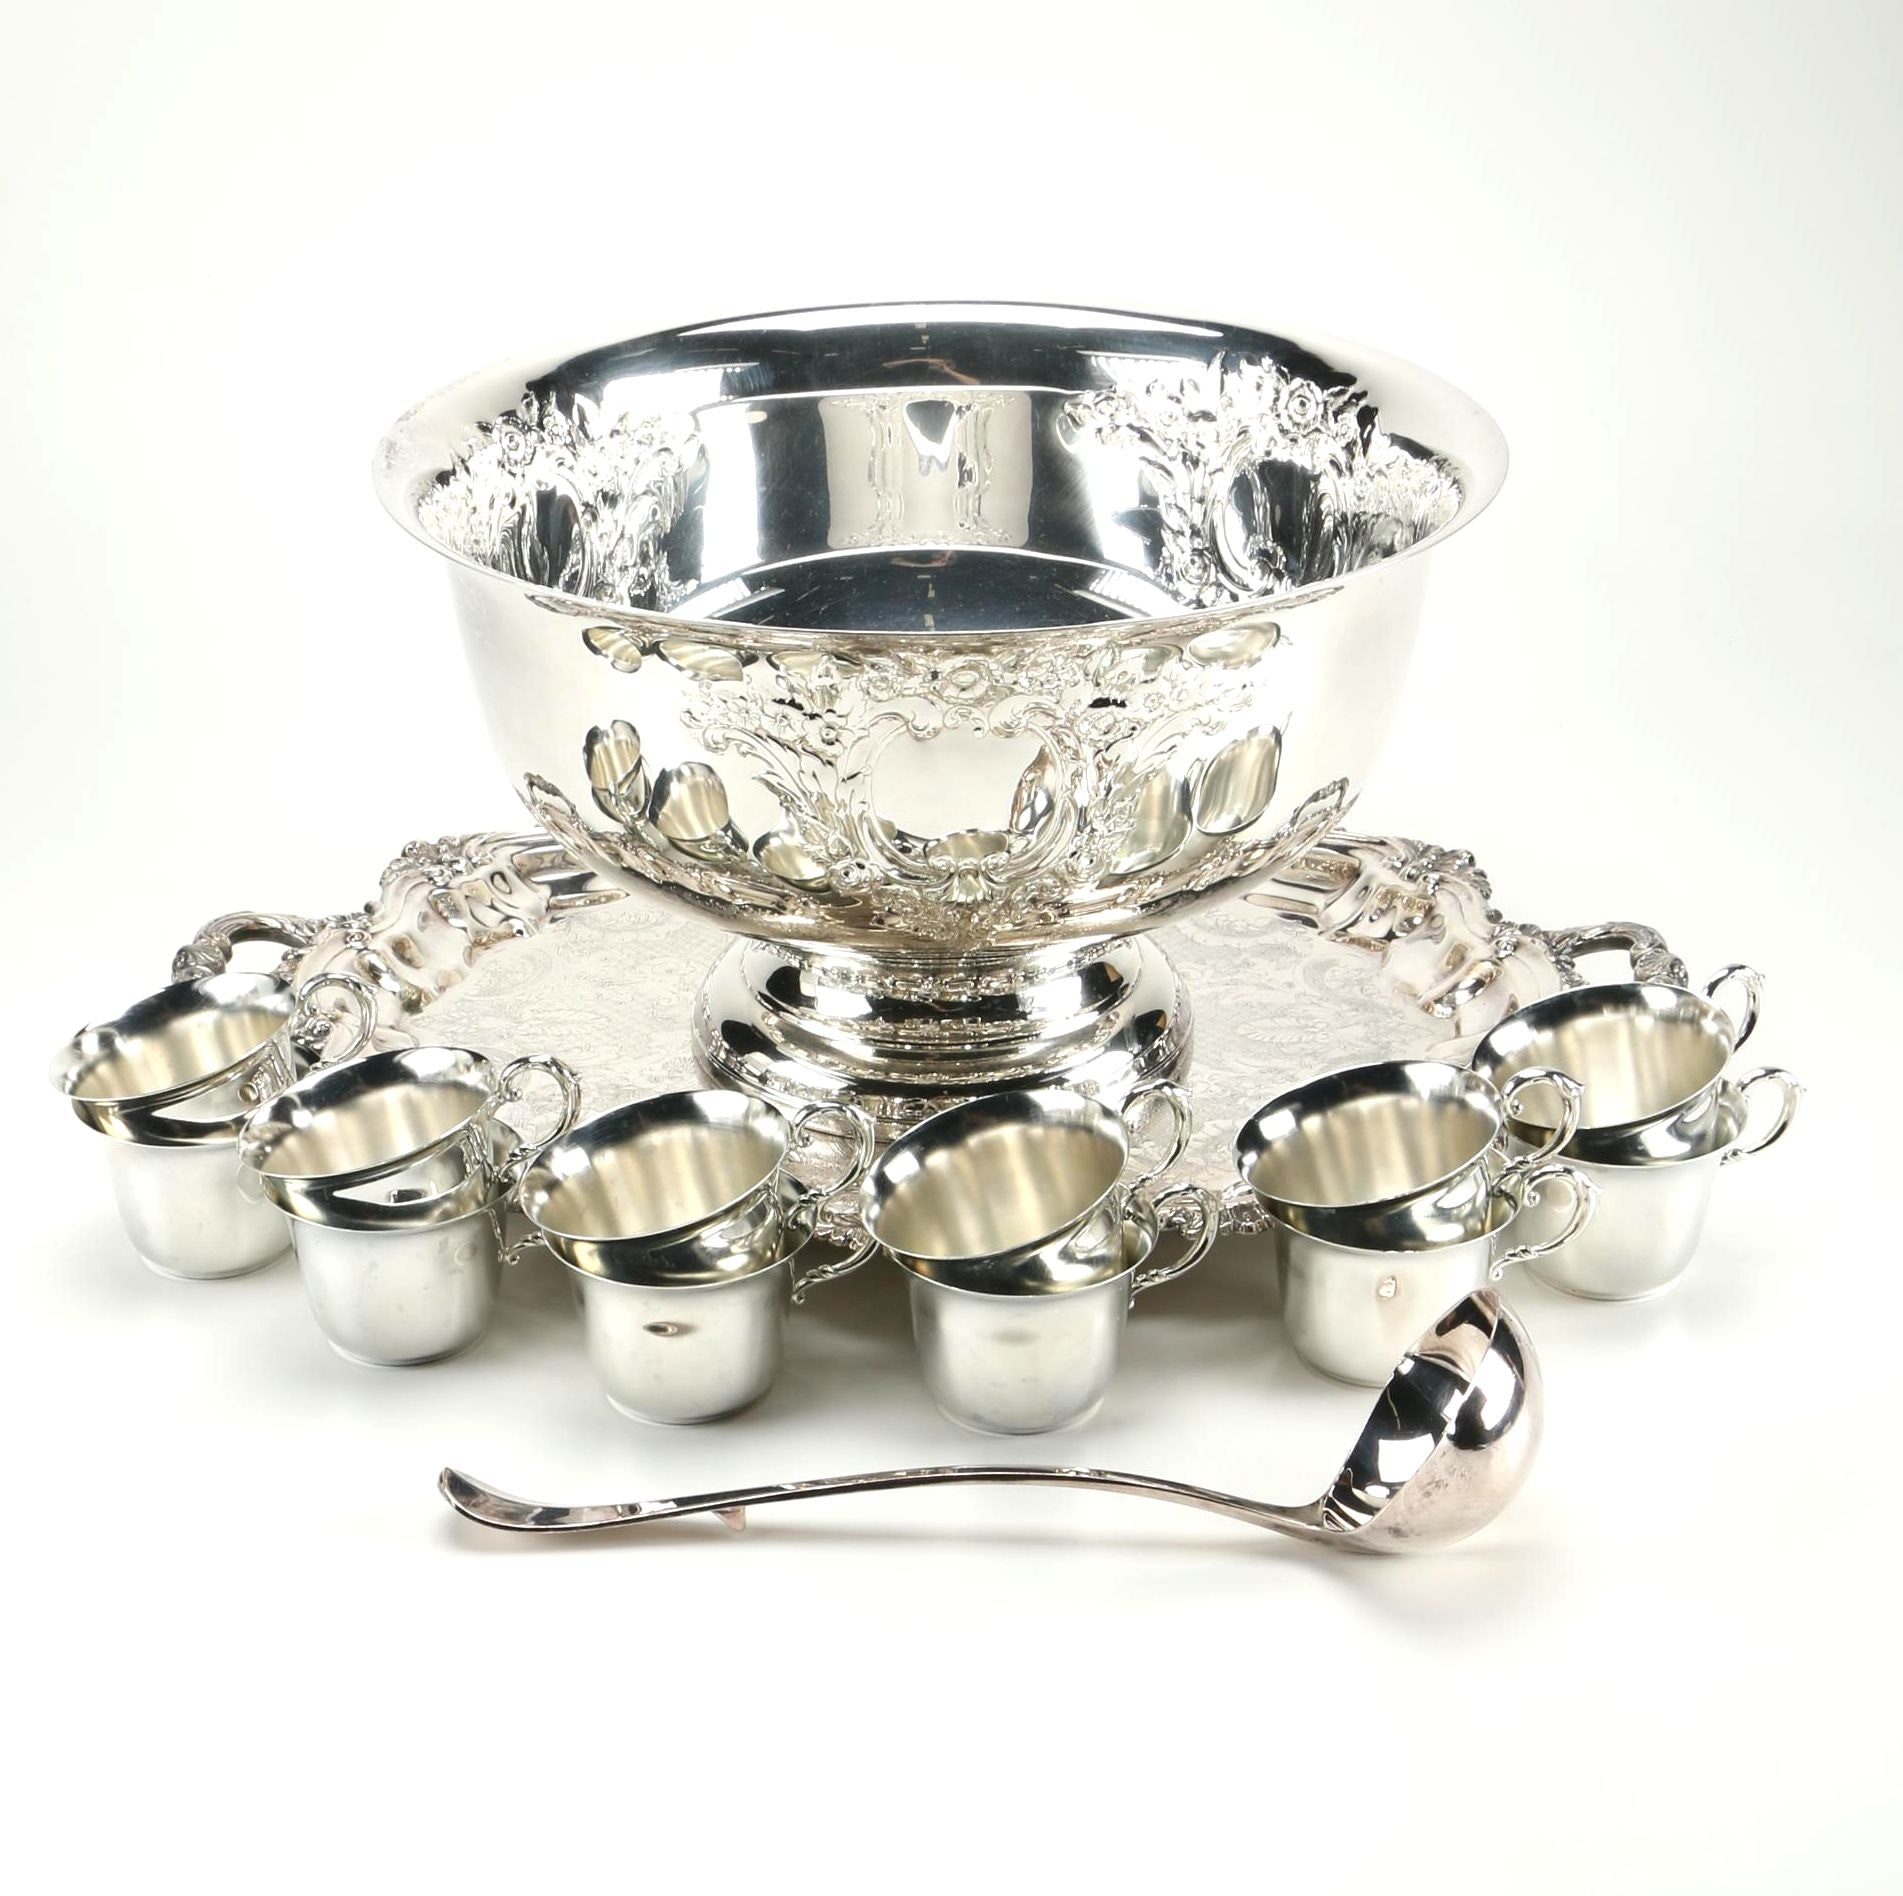 Oneida Silver Plate Punch Bowl and Accessories